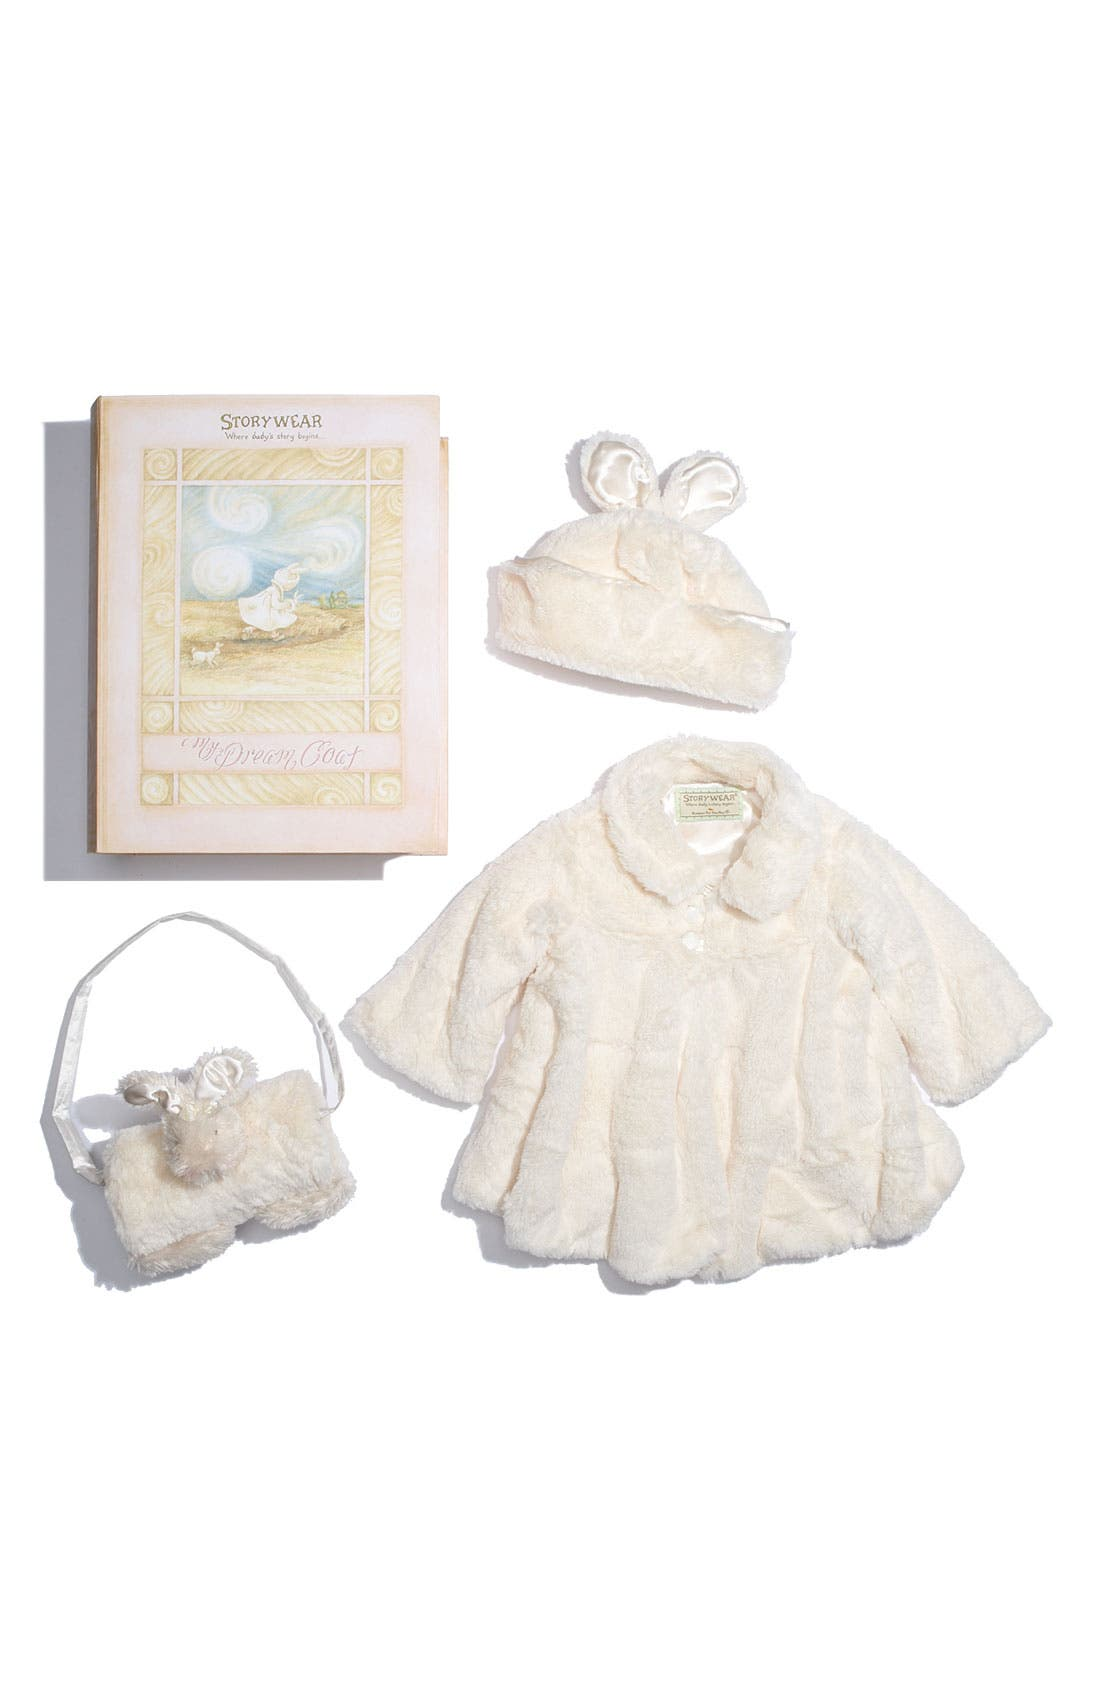 Main Image - Bunnies by the Bay 'Glad Dreams Coat Storywear' Set (Baby)